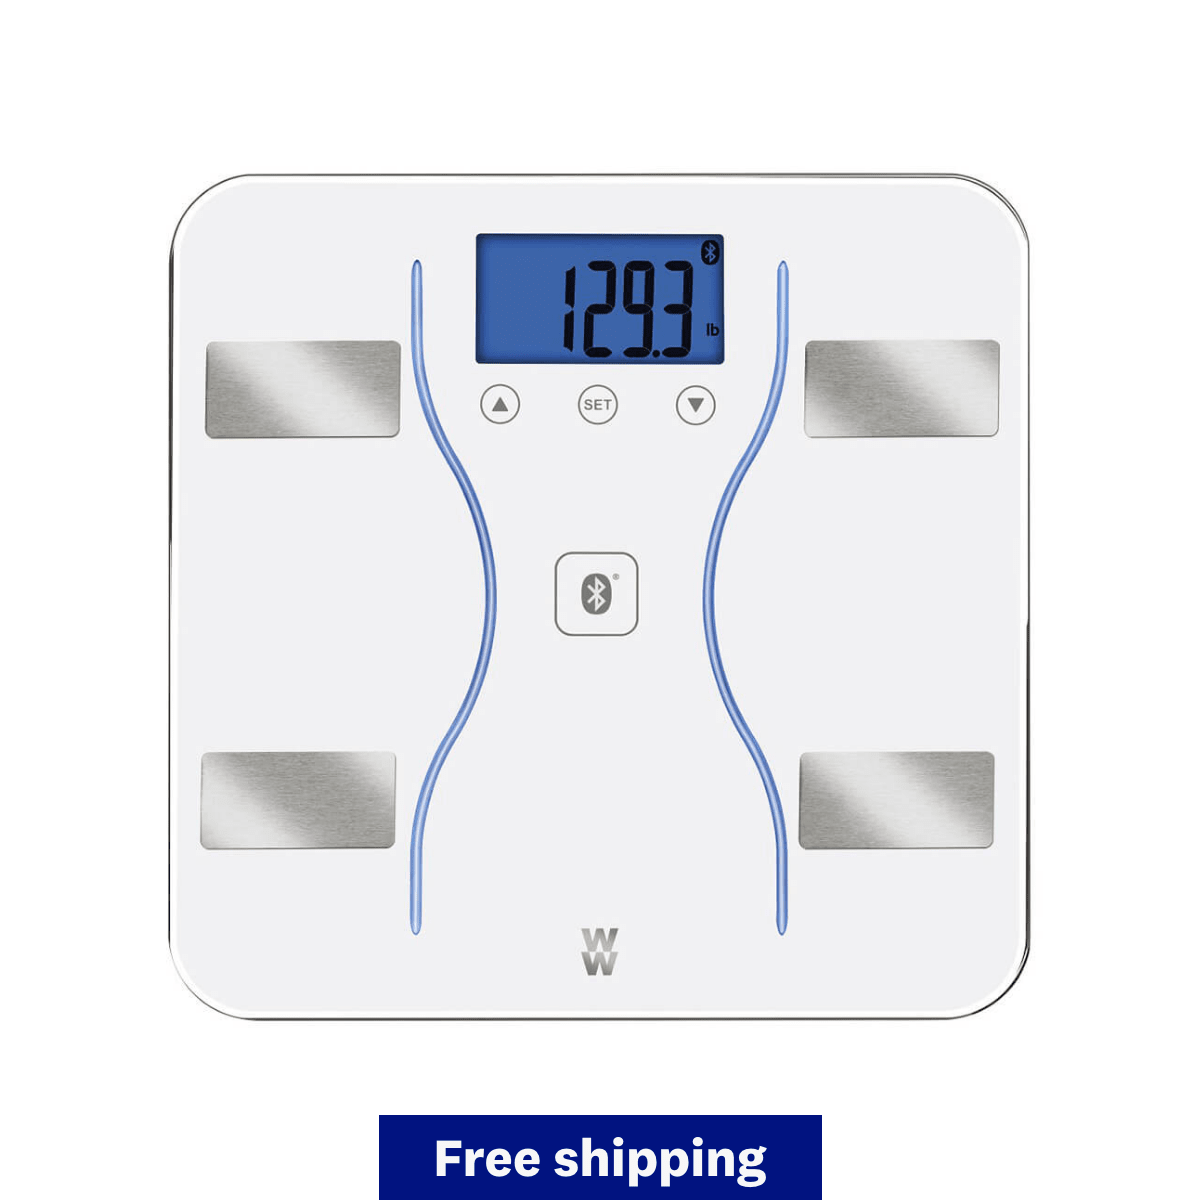 Body Analysis Bluetooth Scale White - free shipping banner